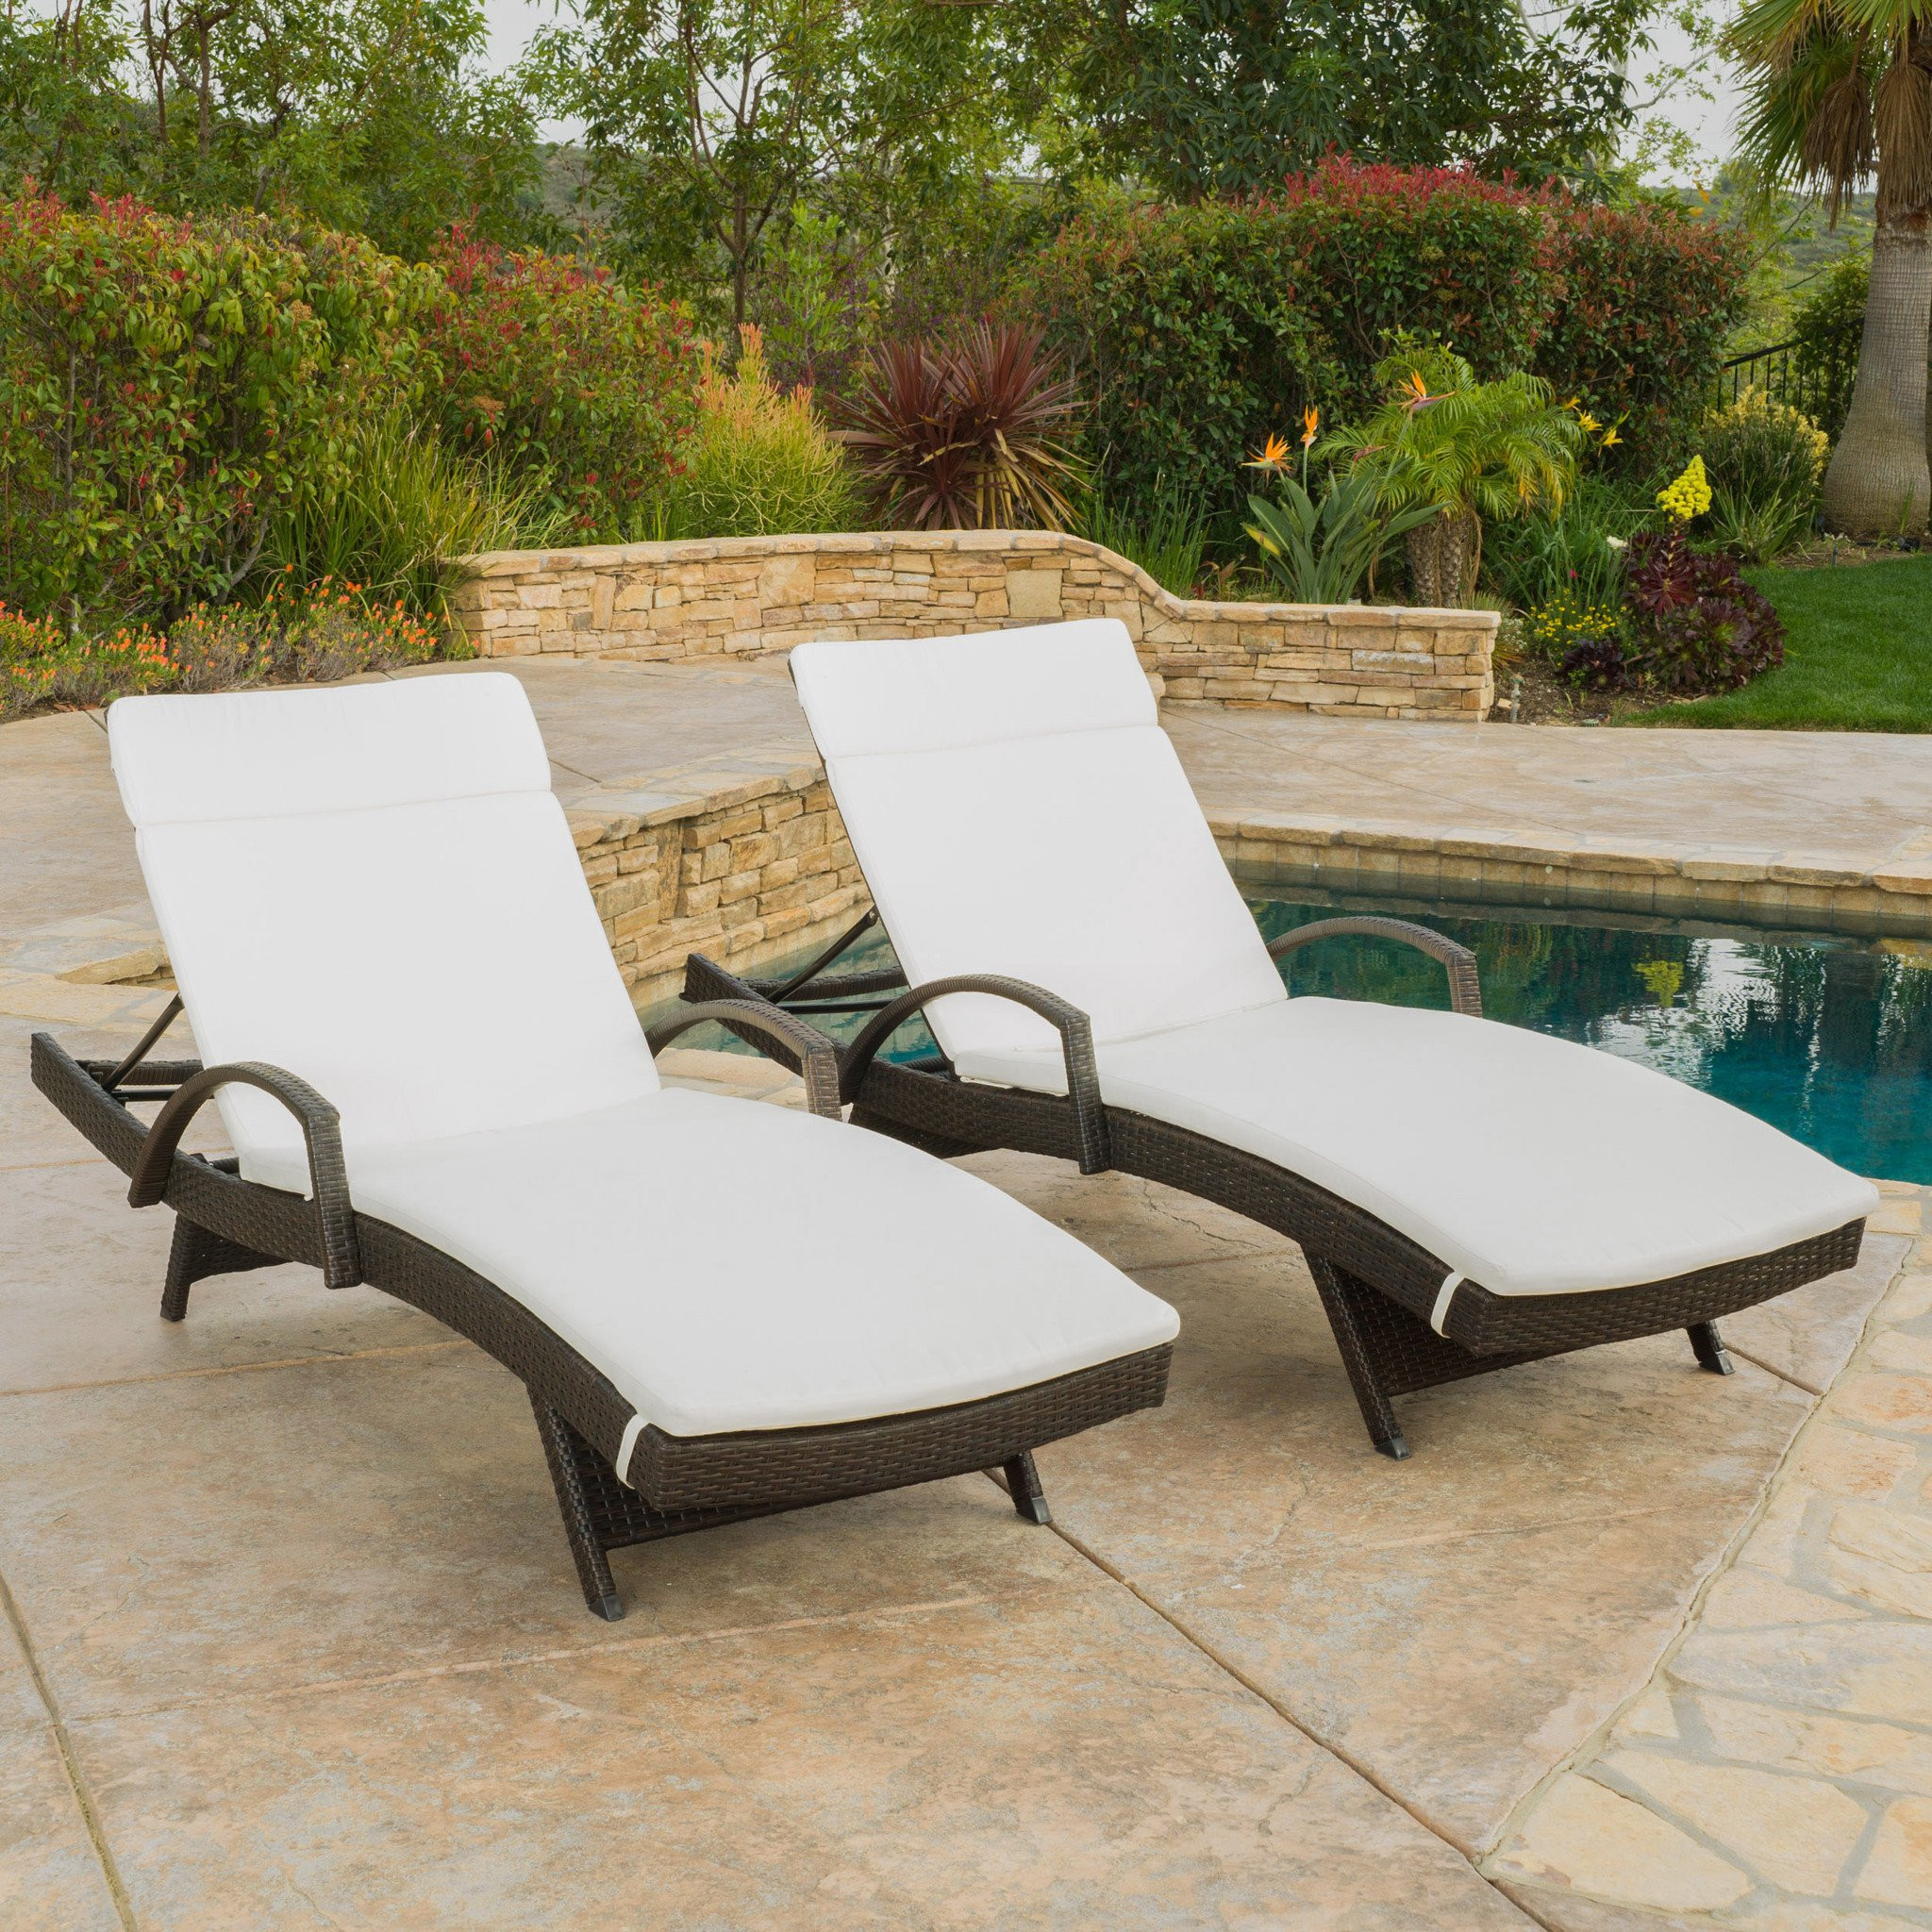 Lakeport Outdoor Wicker Armed Chaise Lounge Chairs...